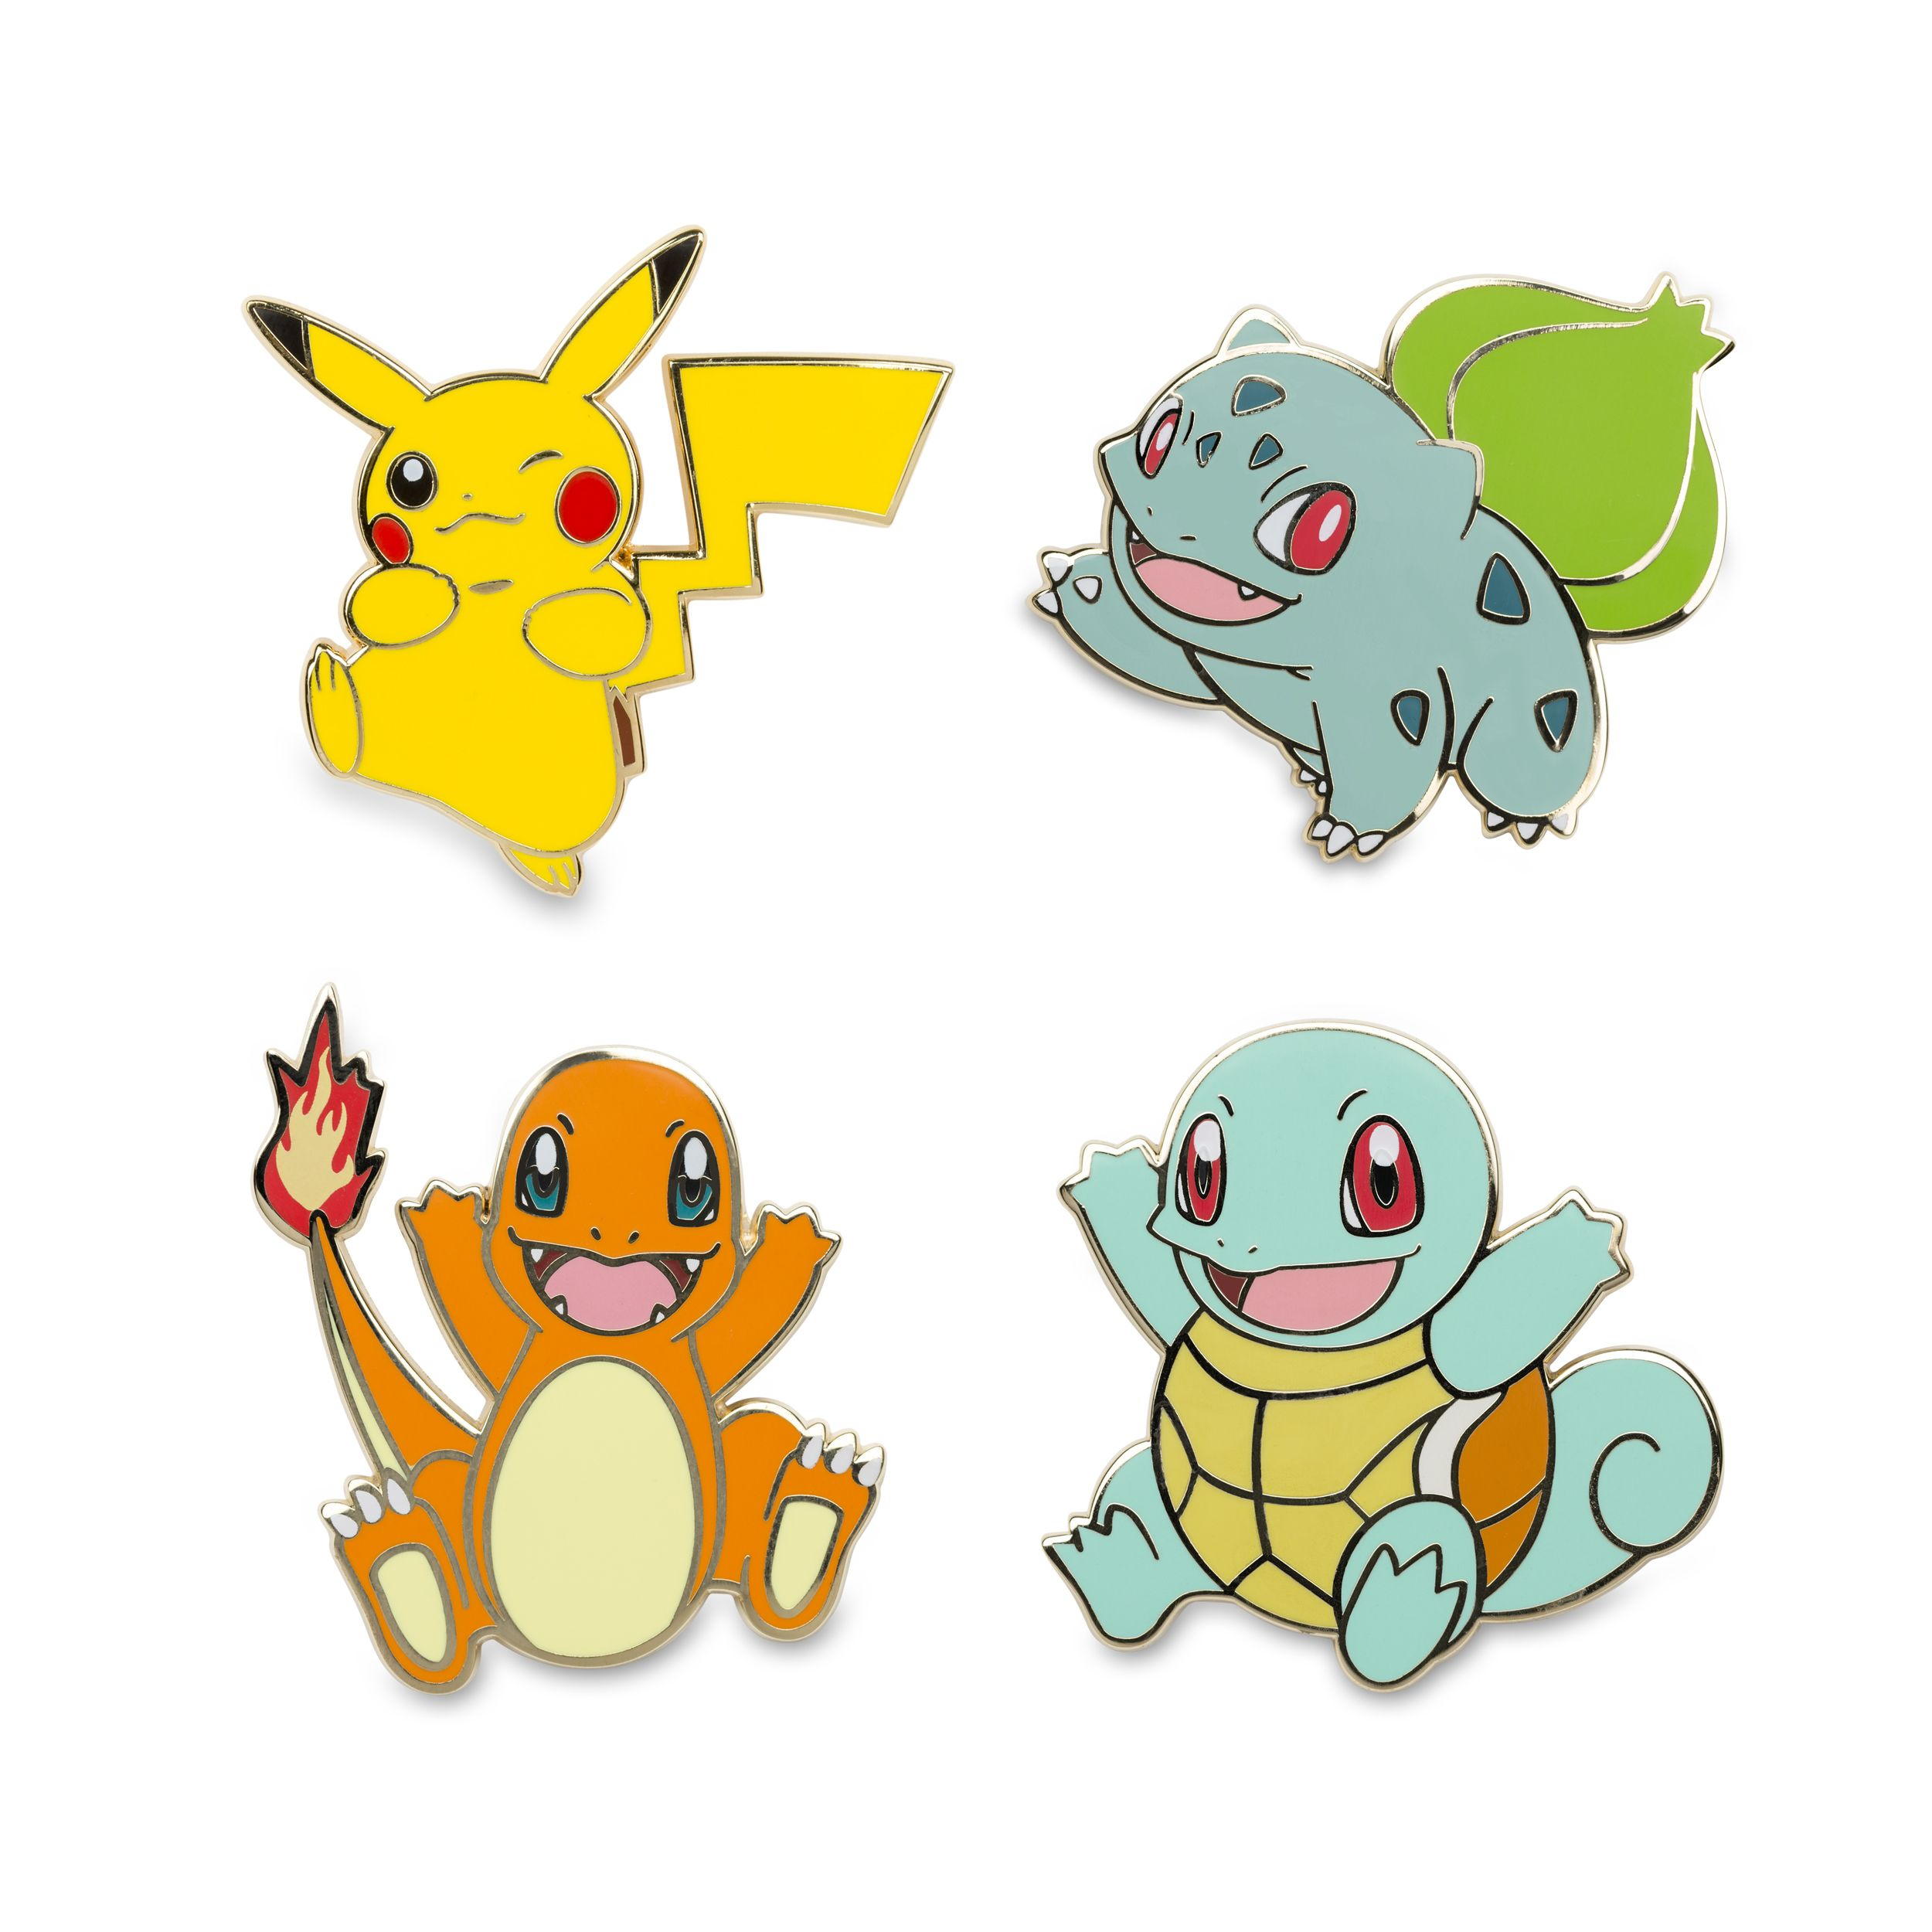 Official Pikachu Bulbasaur Charmander And Squirtle Pokemon Pins